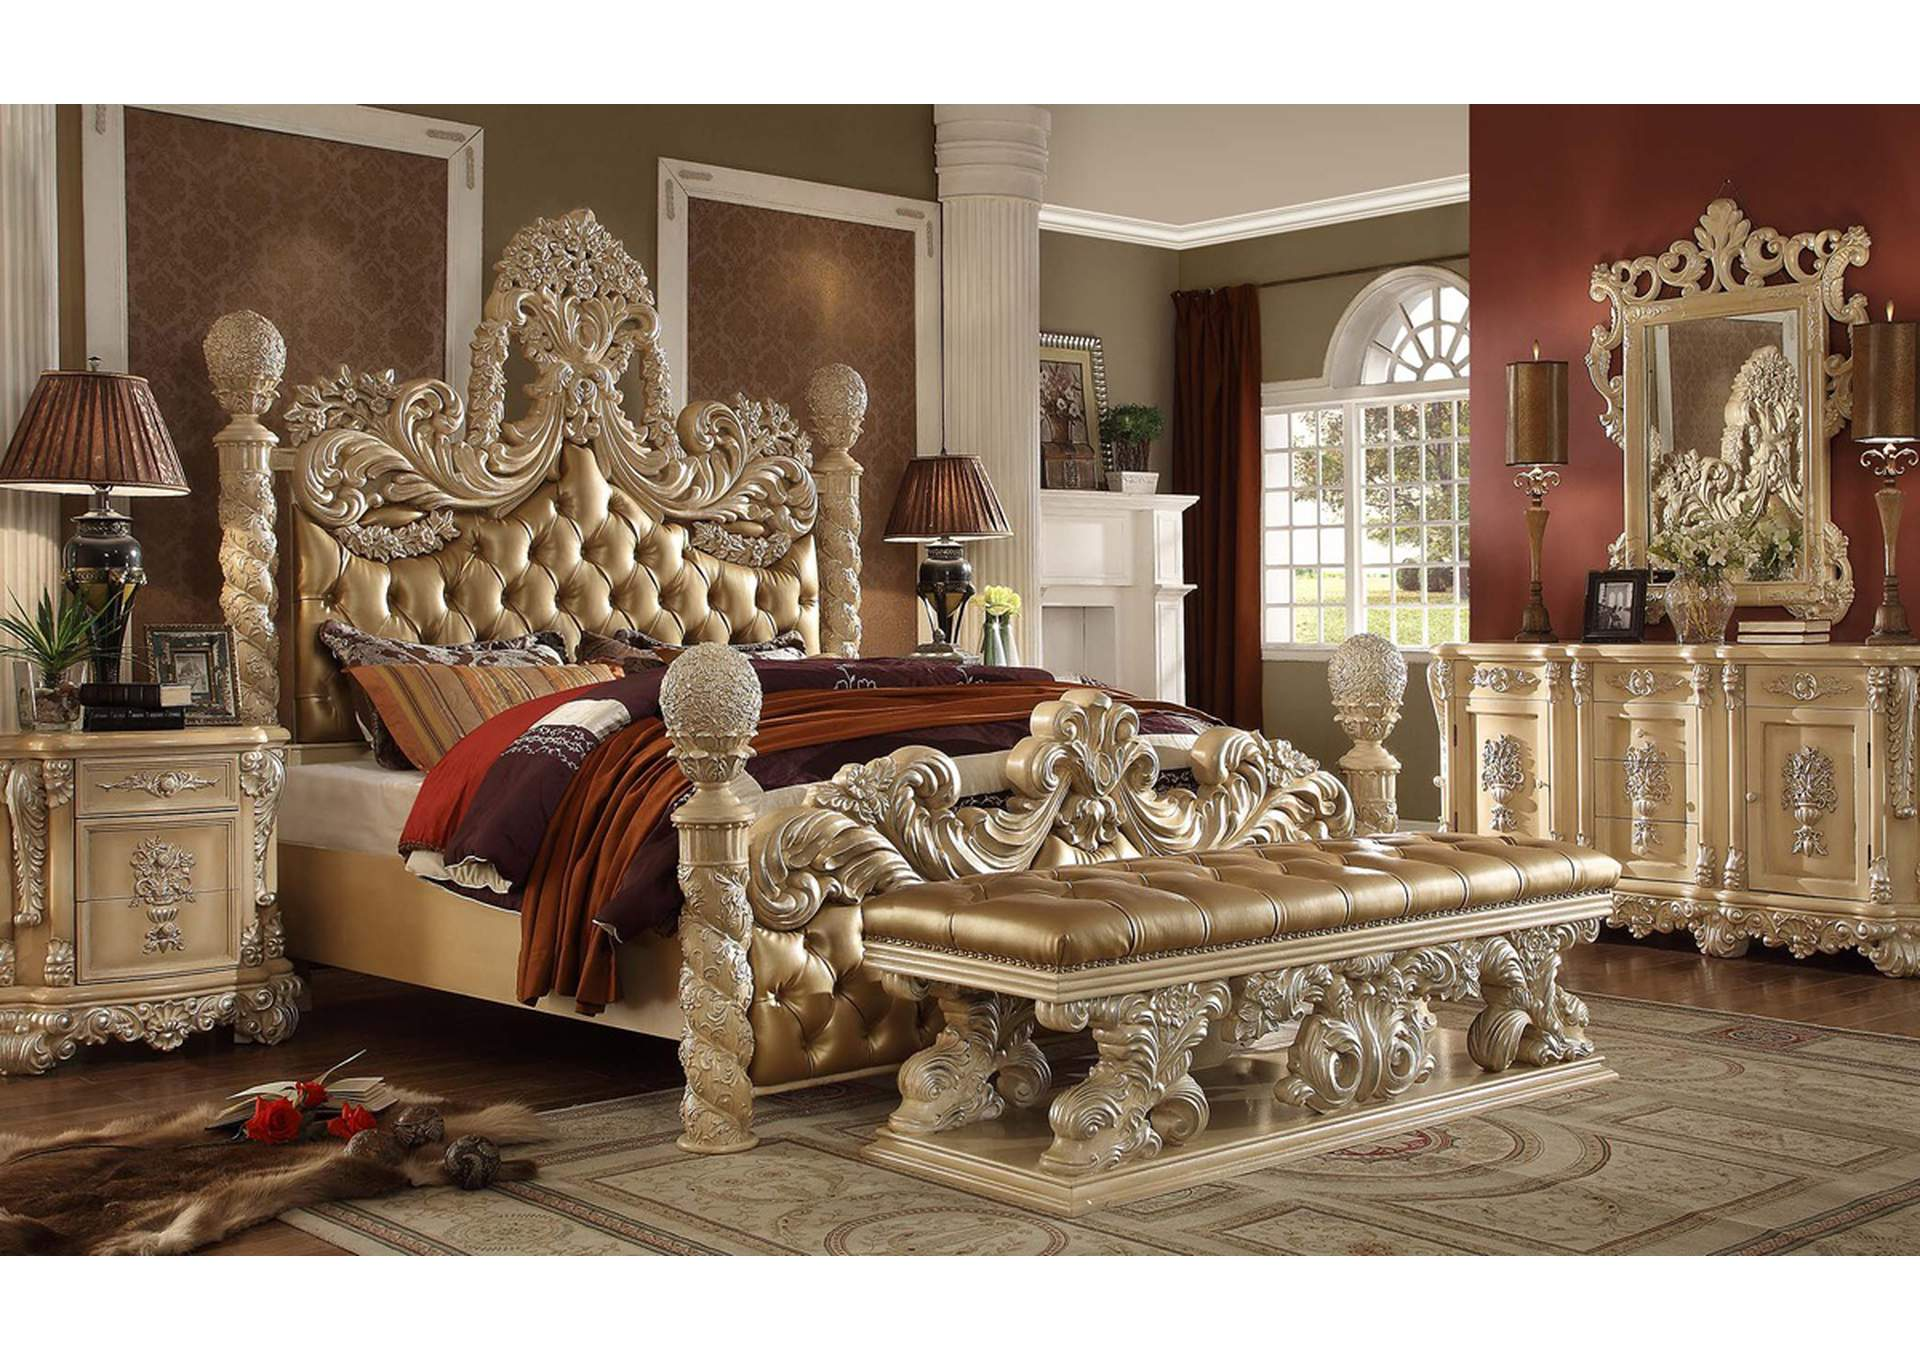 Pickle Frost & Antique Silver California King Bed,Homey Design